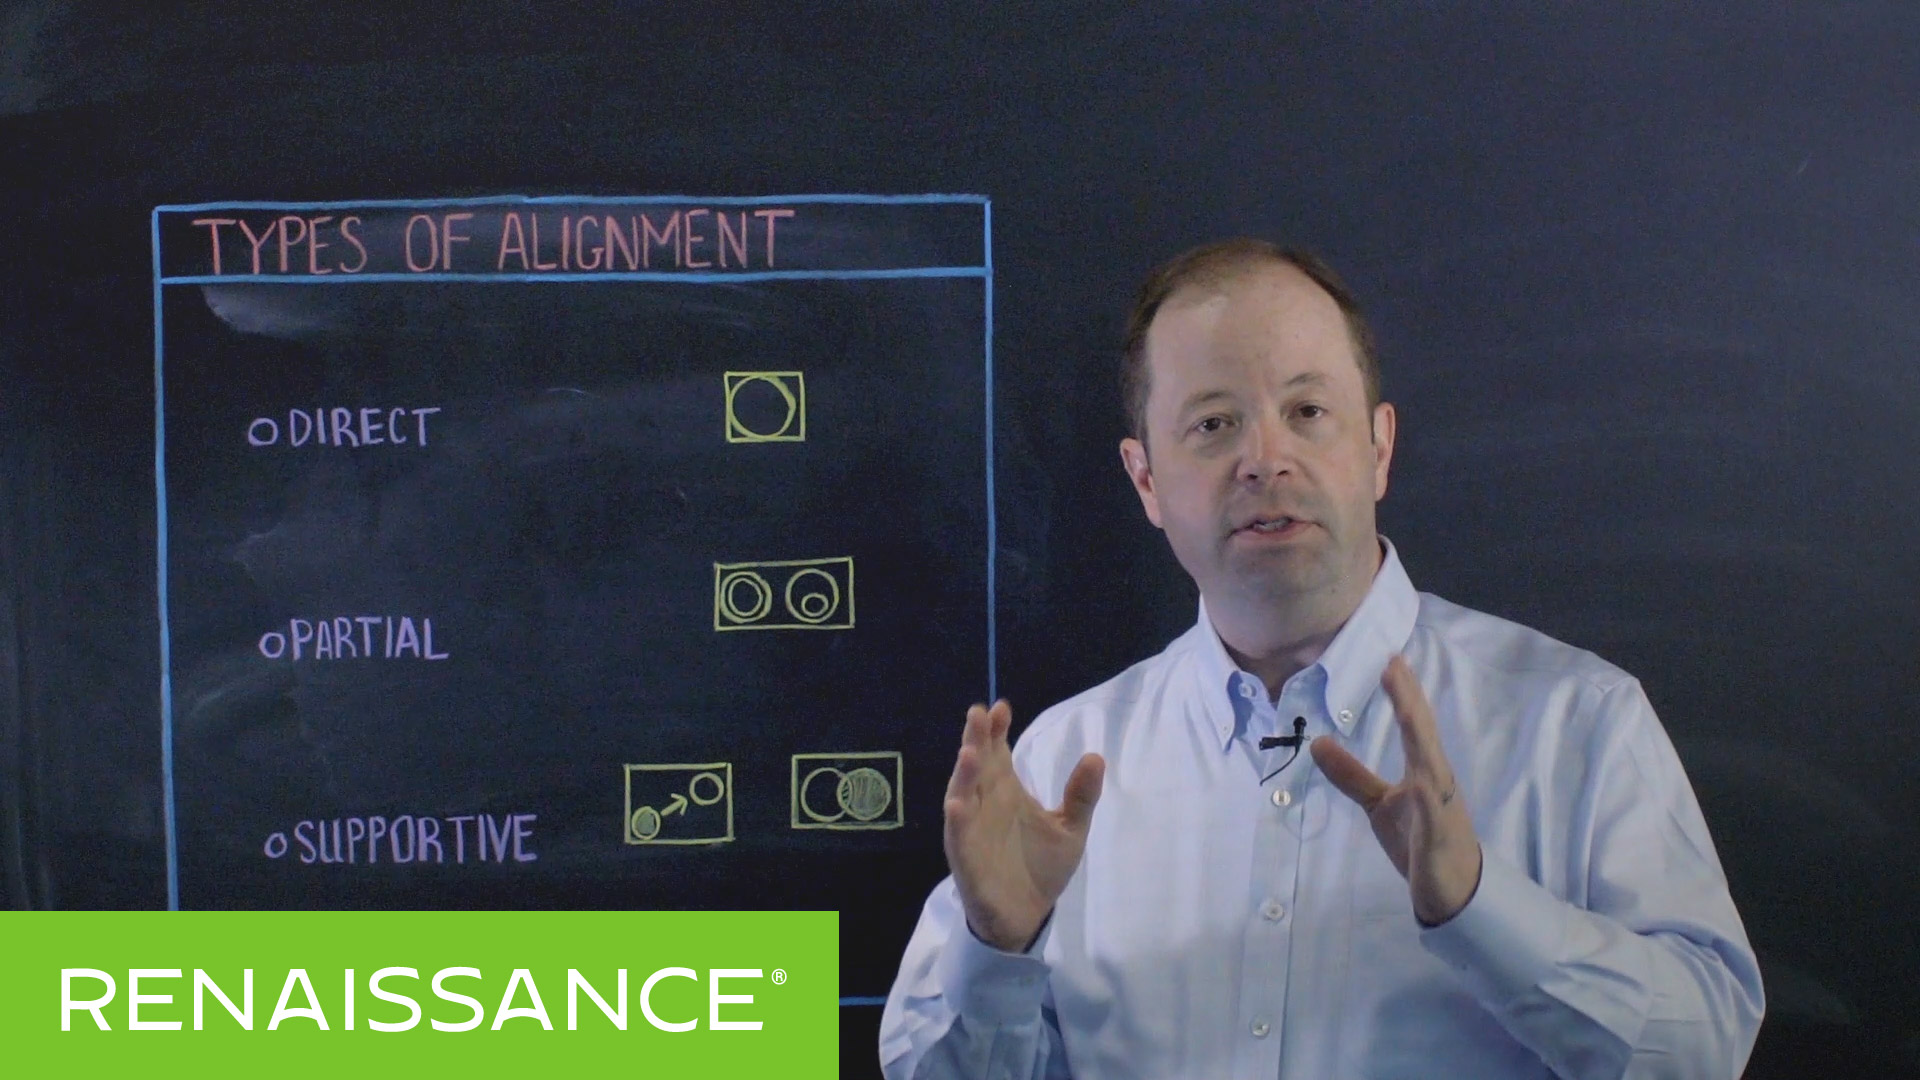 AssessMinutes - Types of Alignment